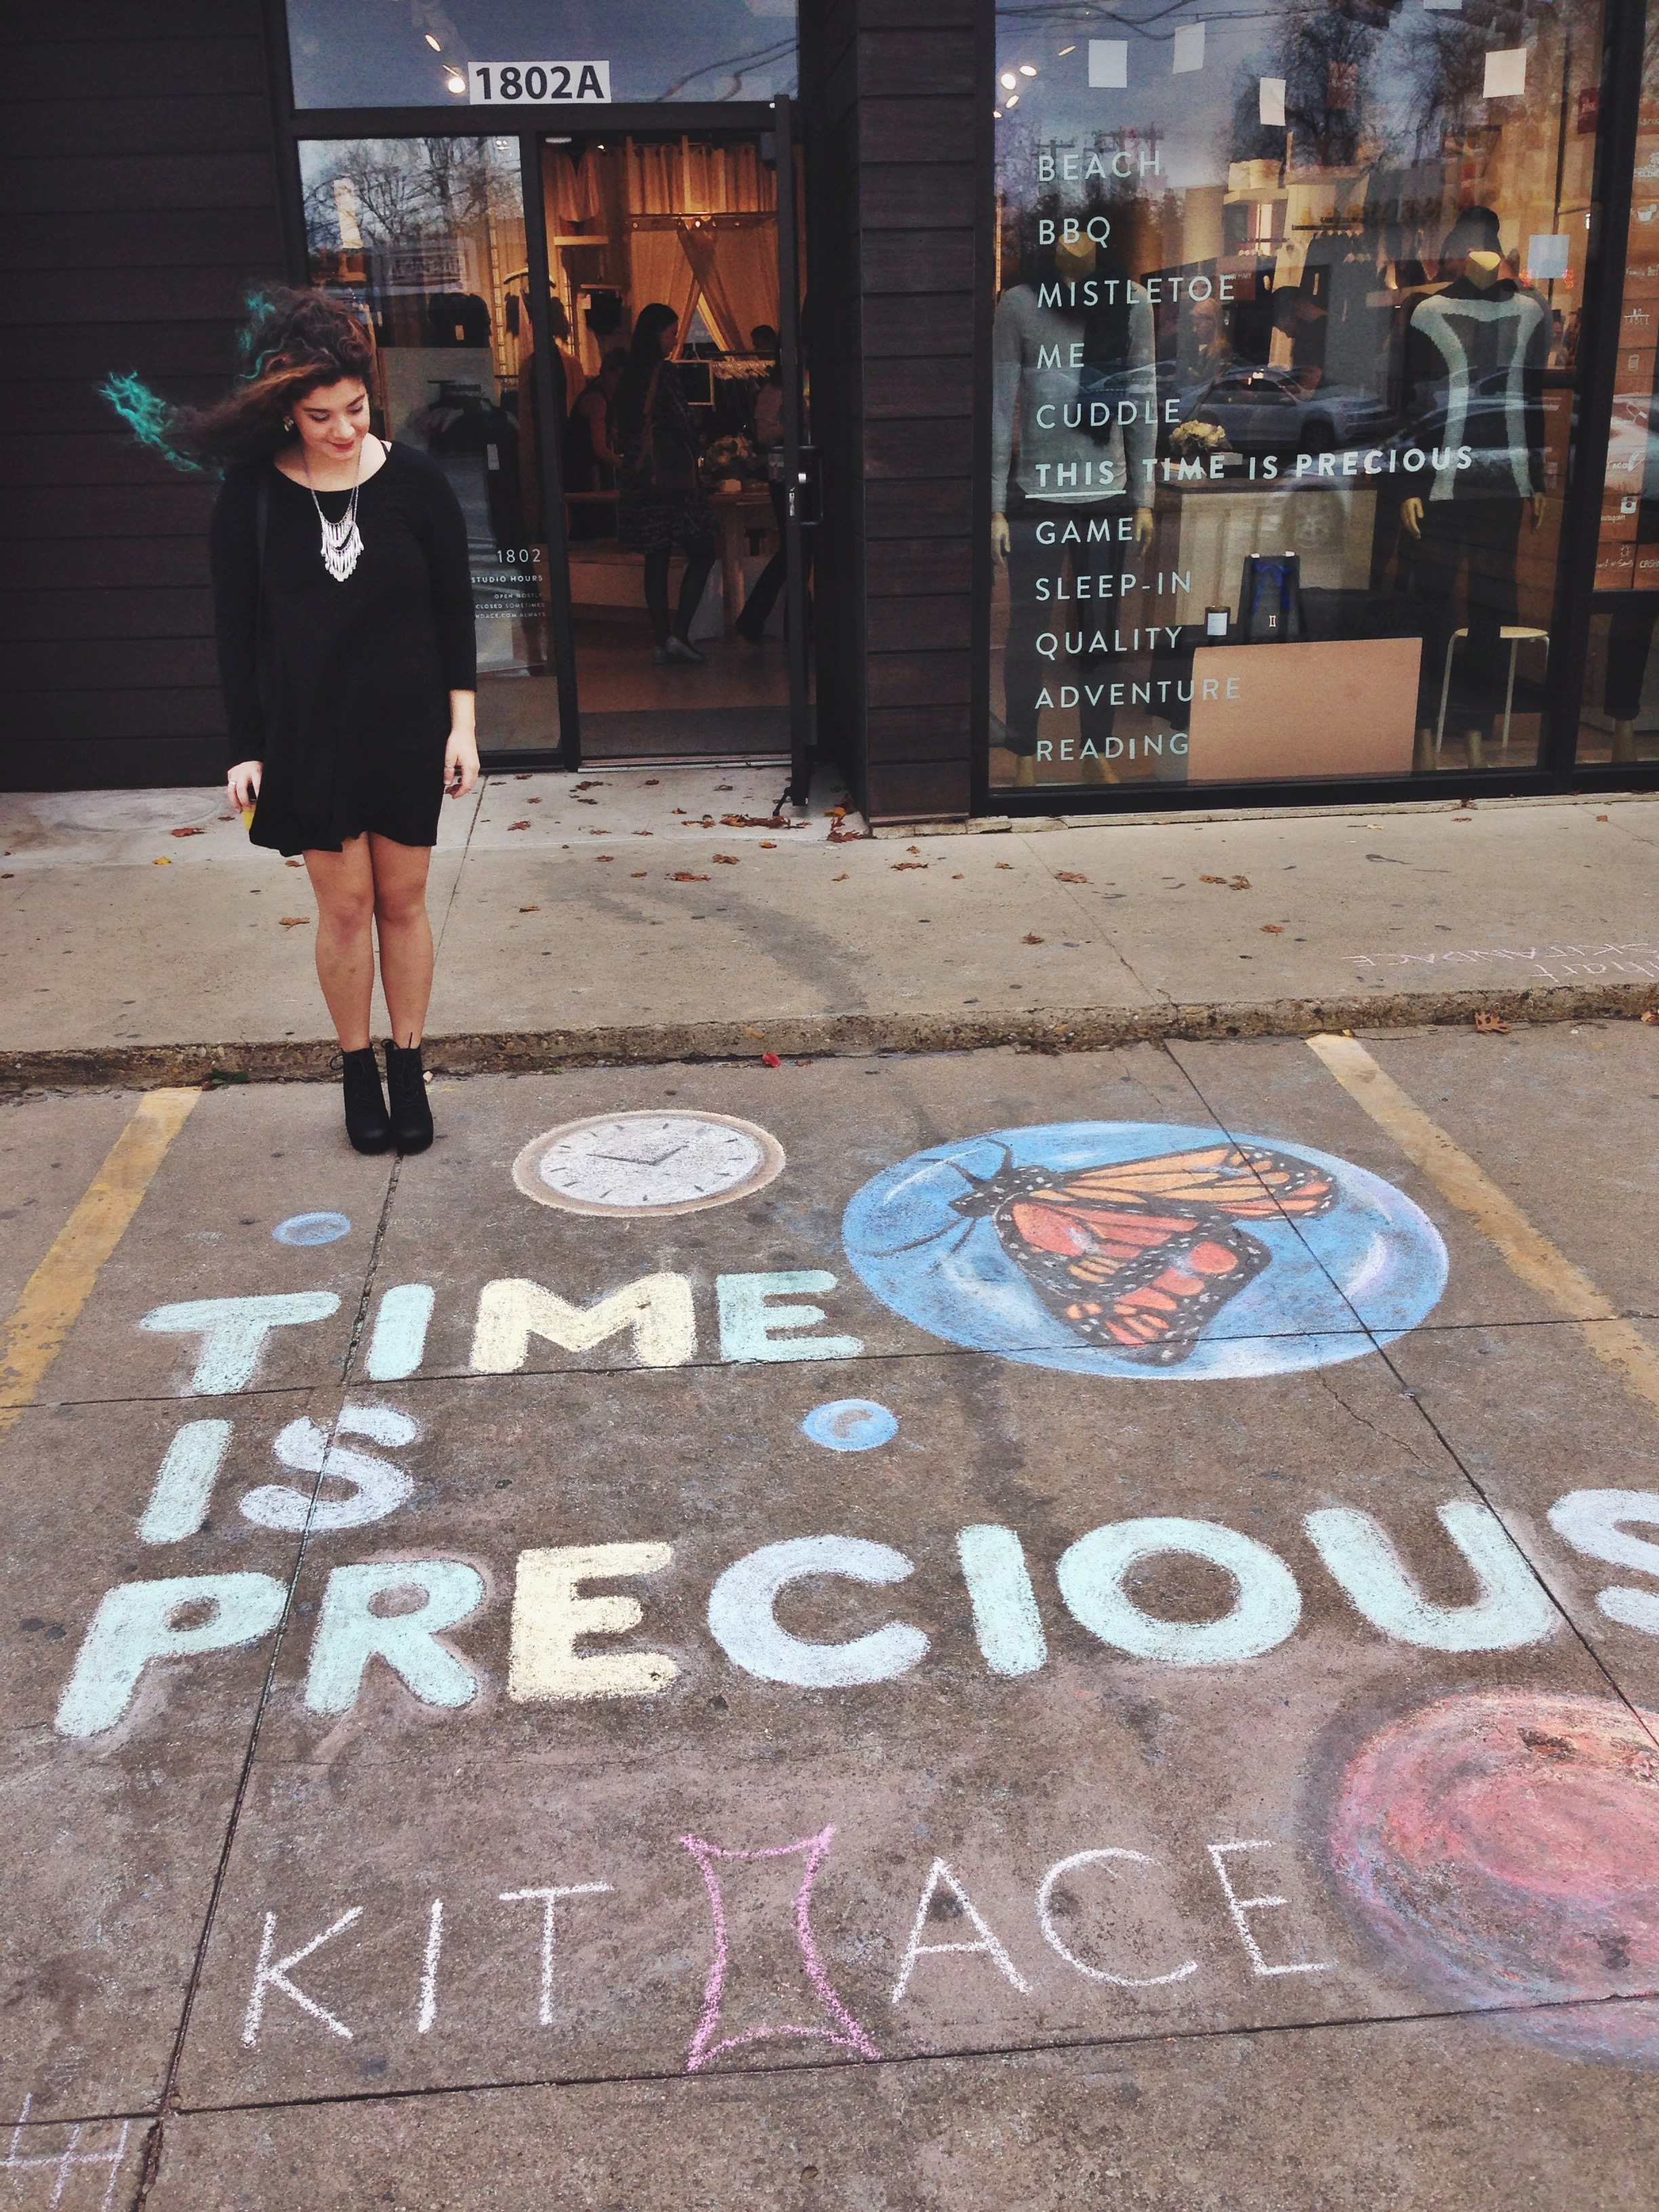 (ignore what I am holding) My time is precious.